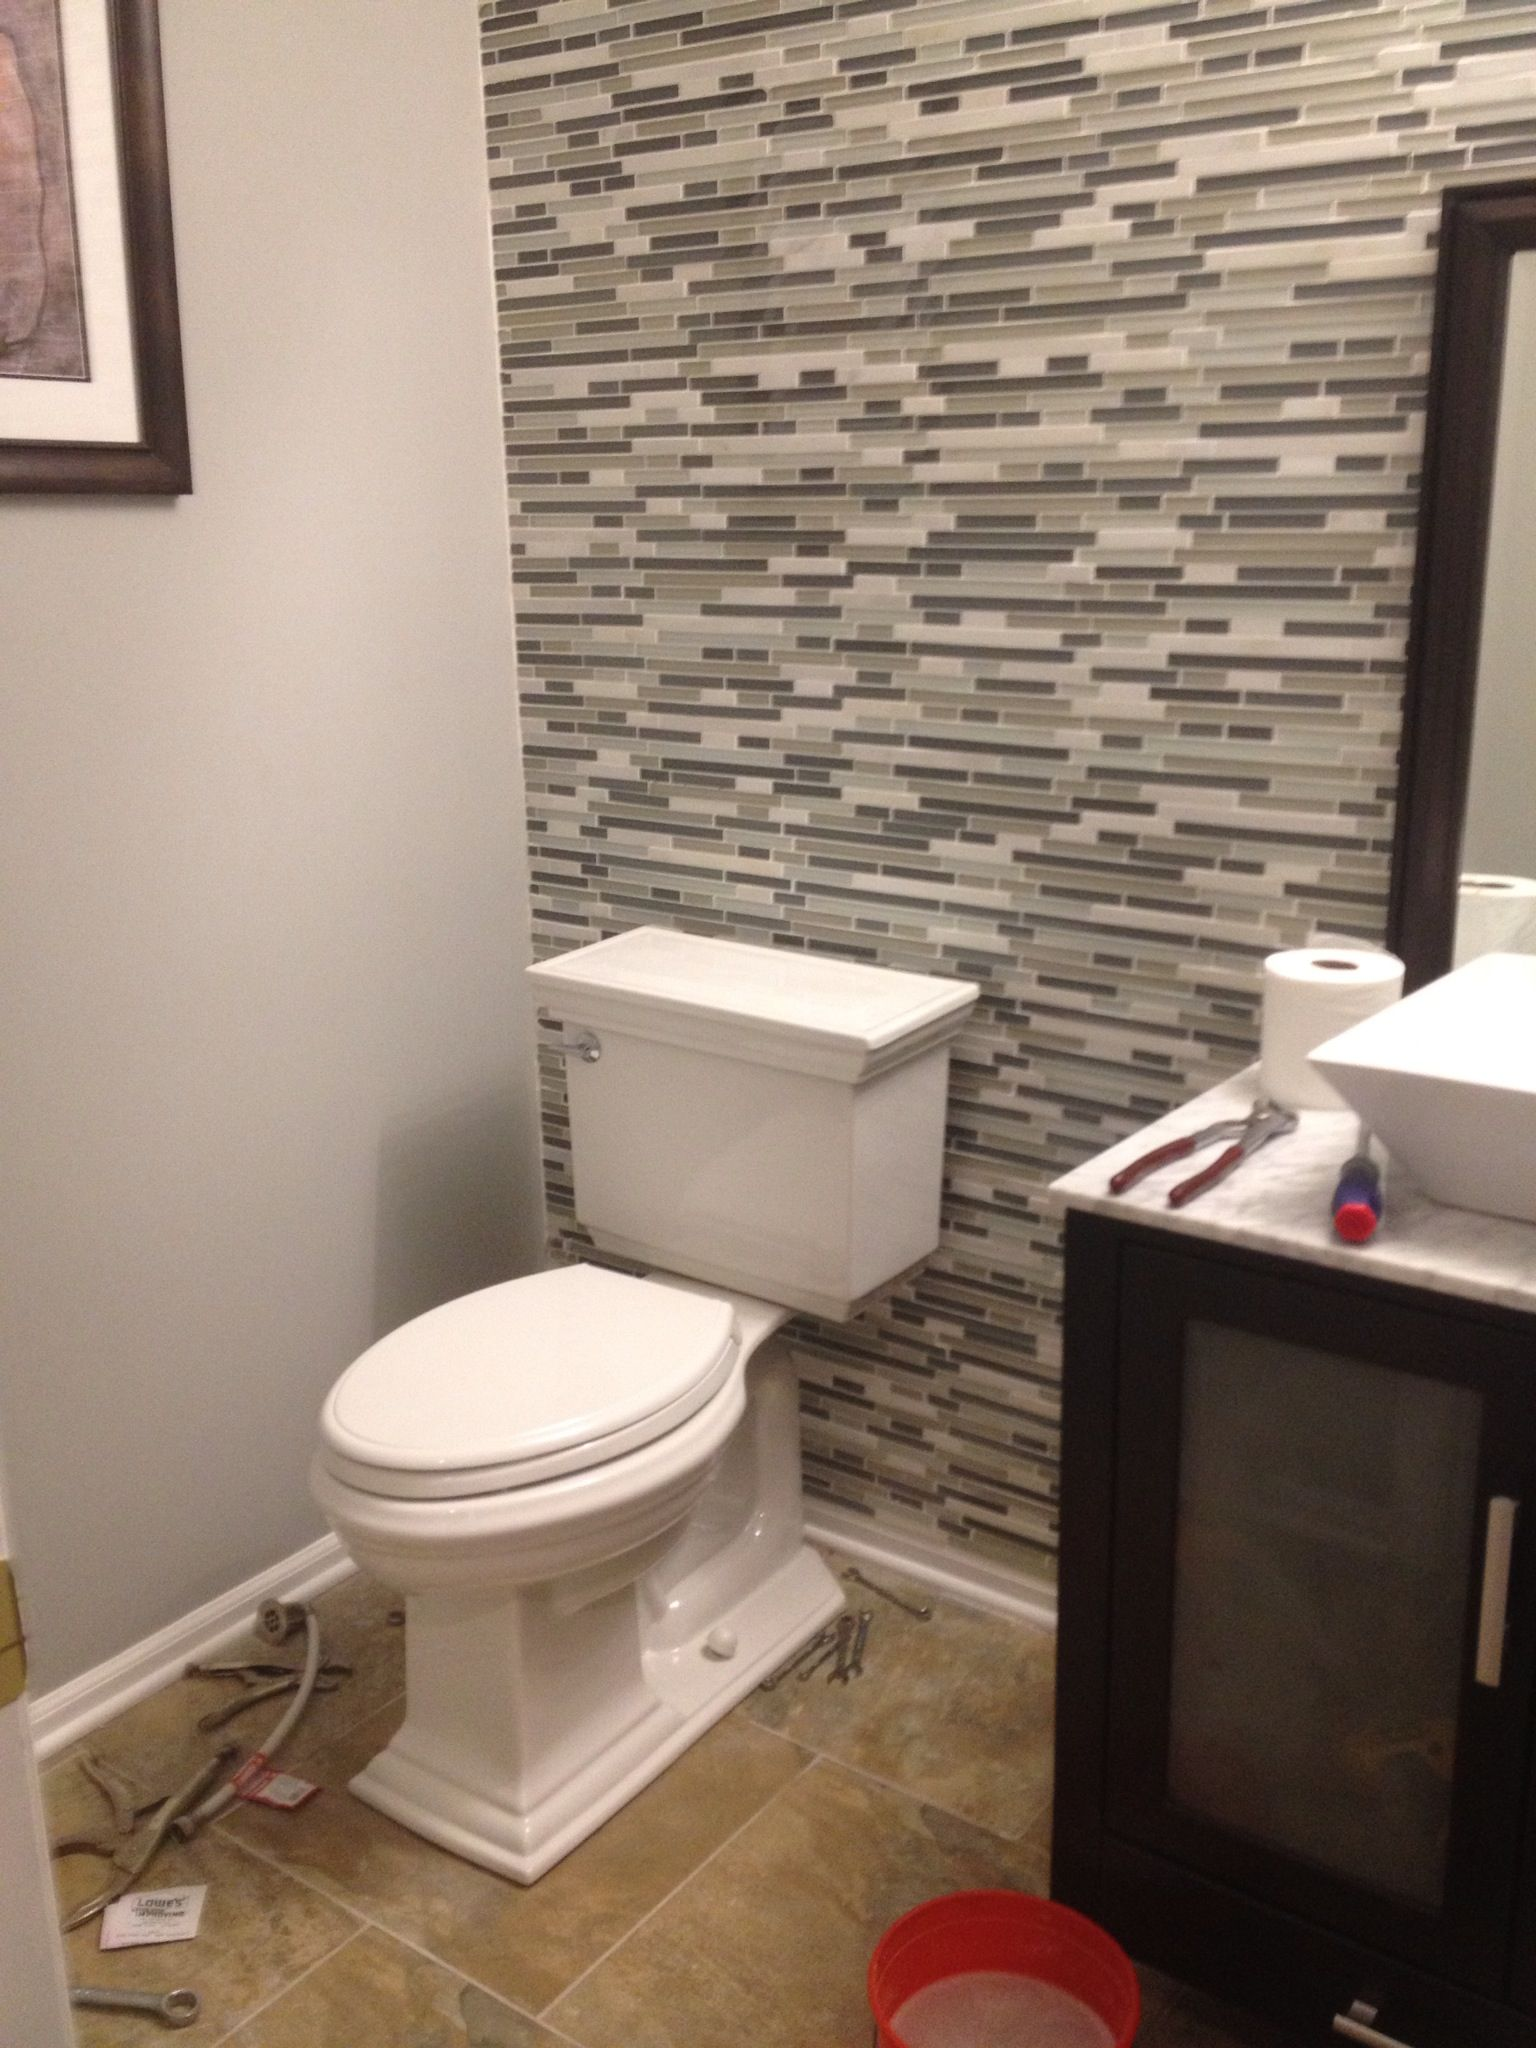 Mosaic Wall Tile On The Back Wall Of The Powder Room Dyi Glass Tile Bathroom Room Wall